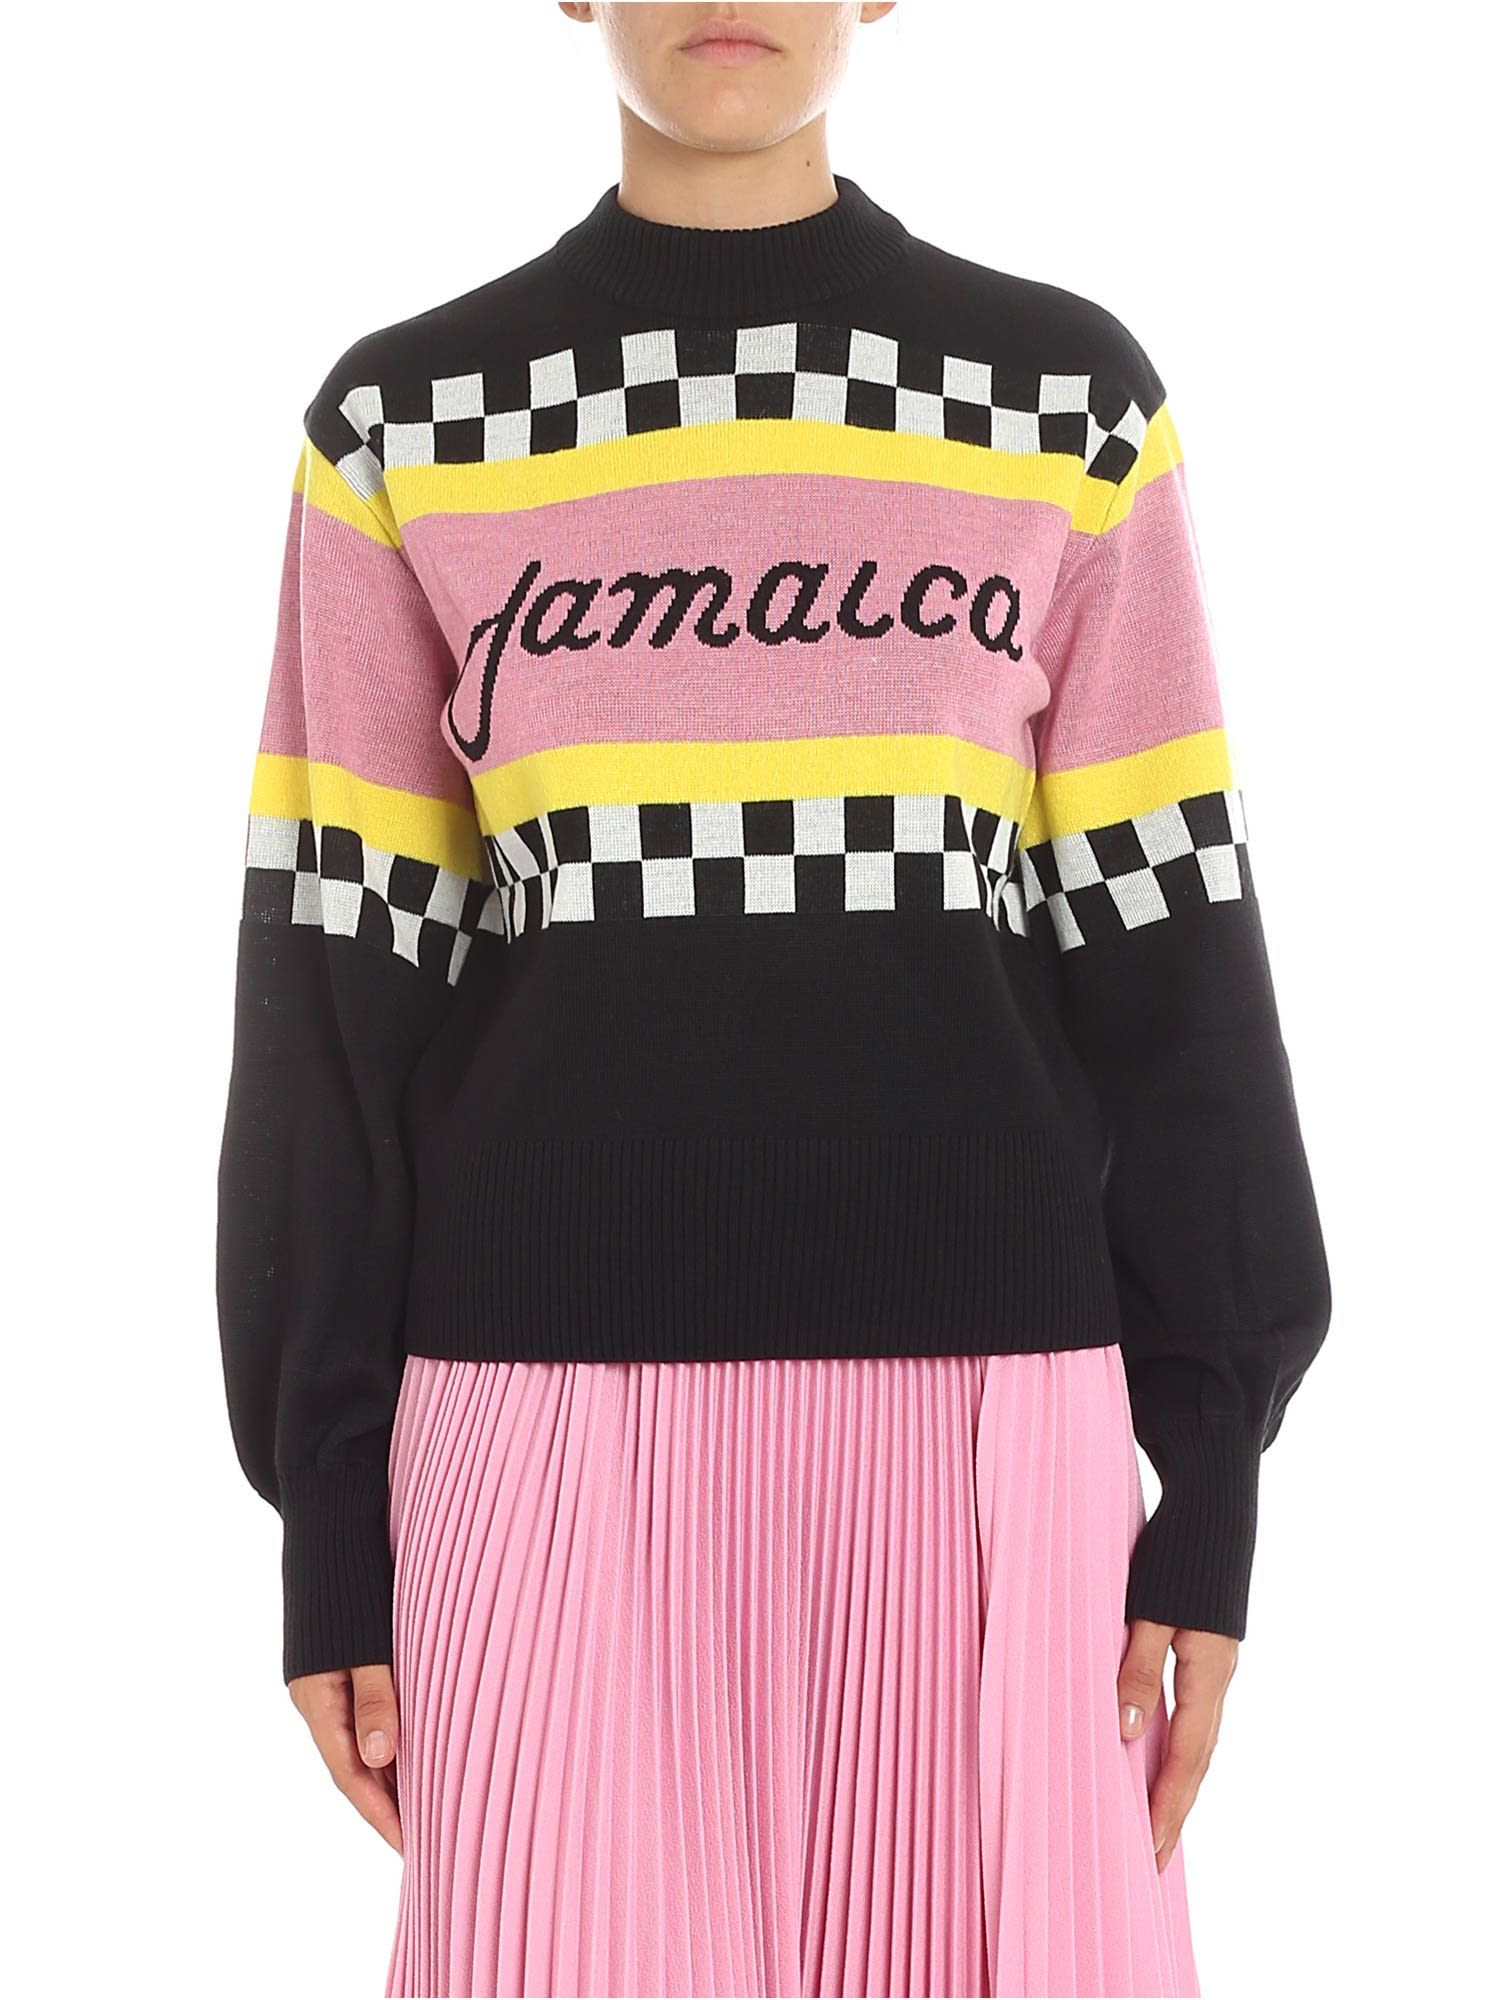 Msgm Knitted Jumper